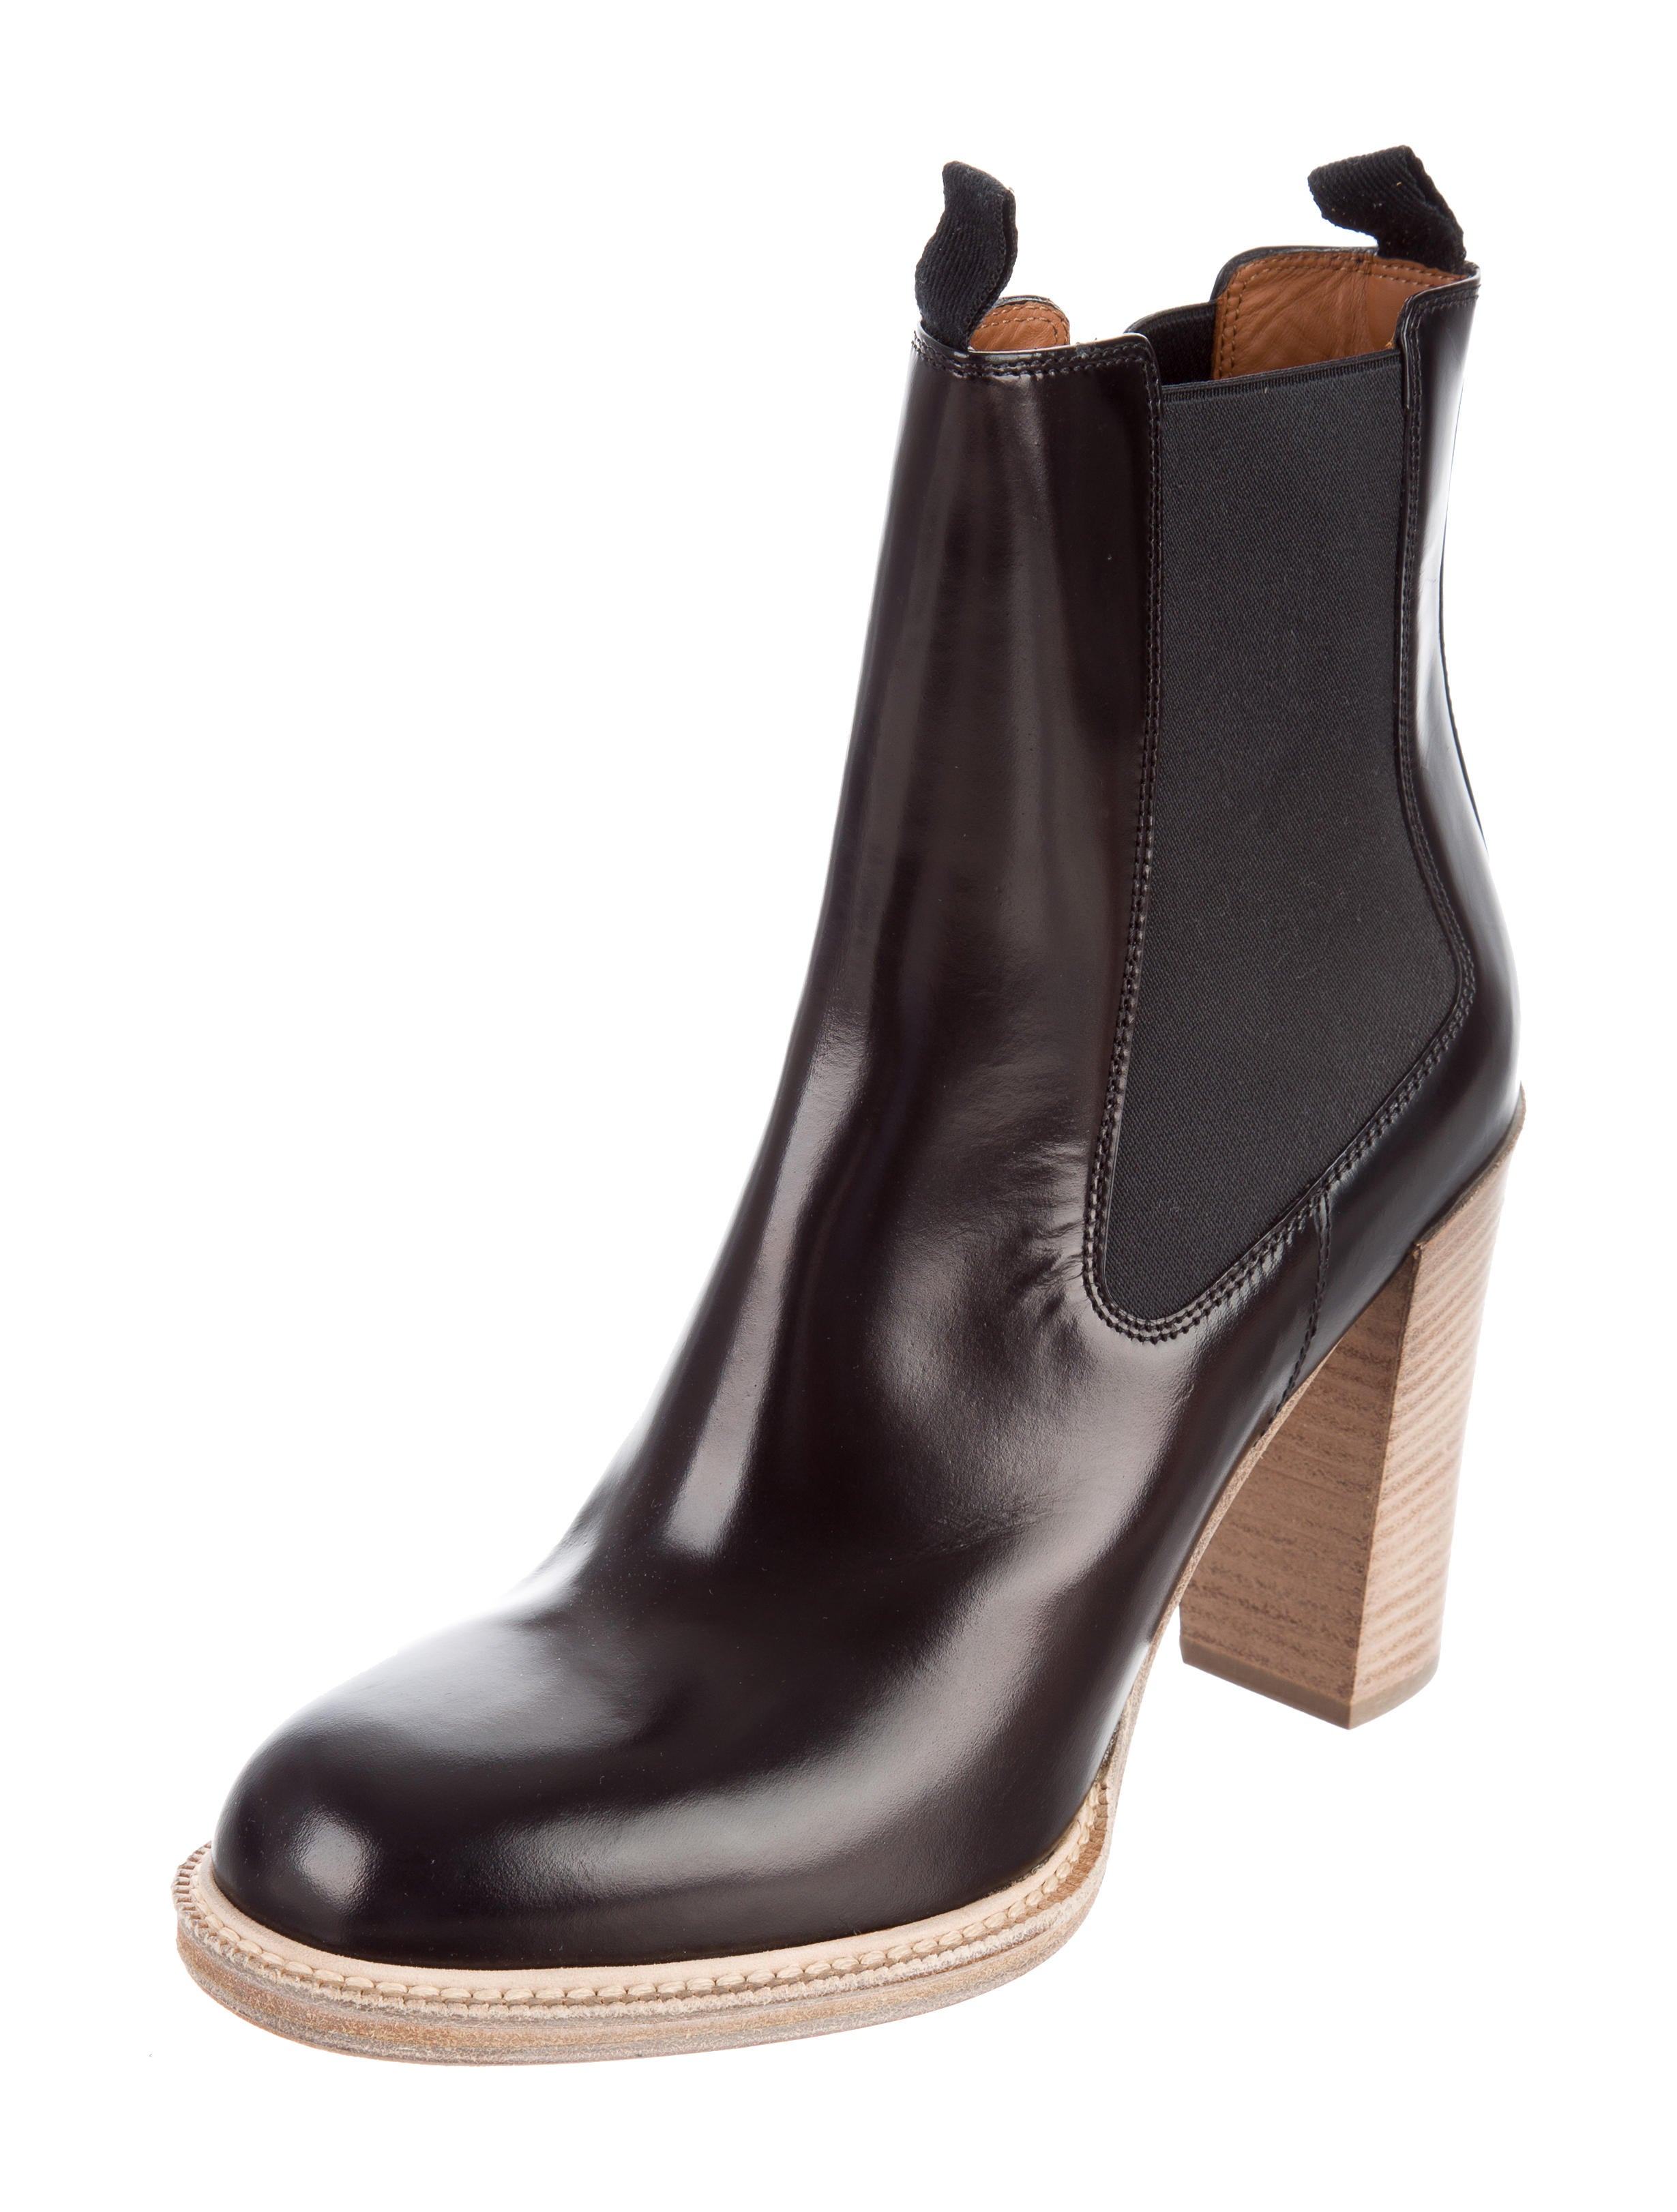 official site cheap price Céline Leather Round-Toe Ankle Boots w/ Tags sale websites sale very cheap 4uzDGH3